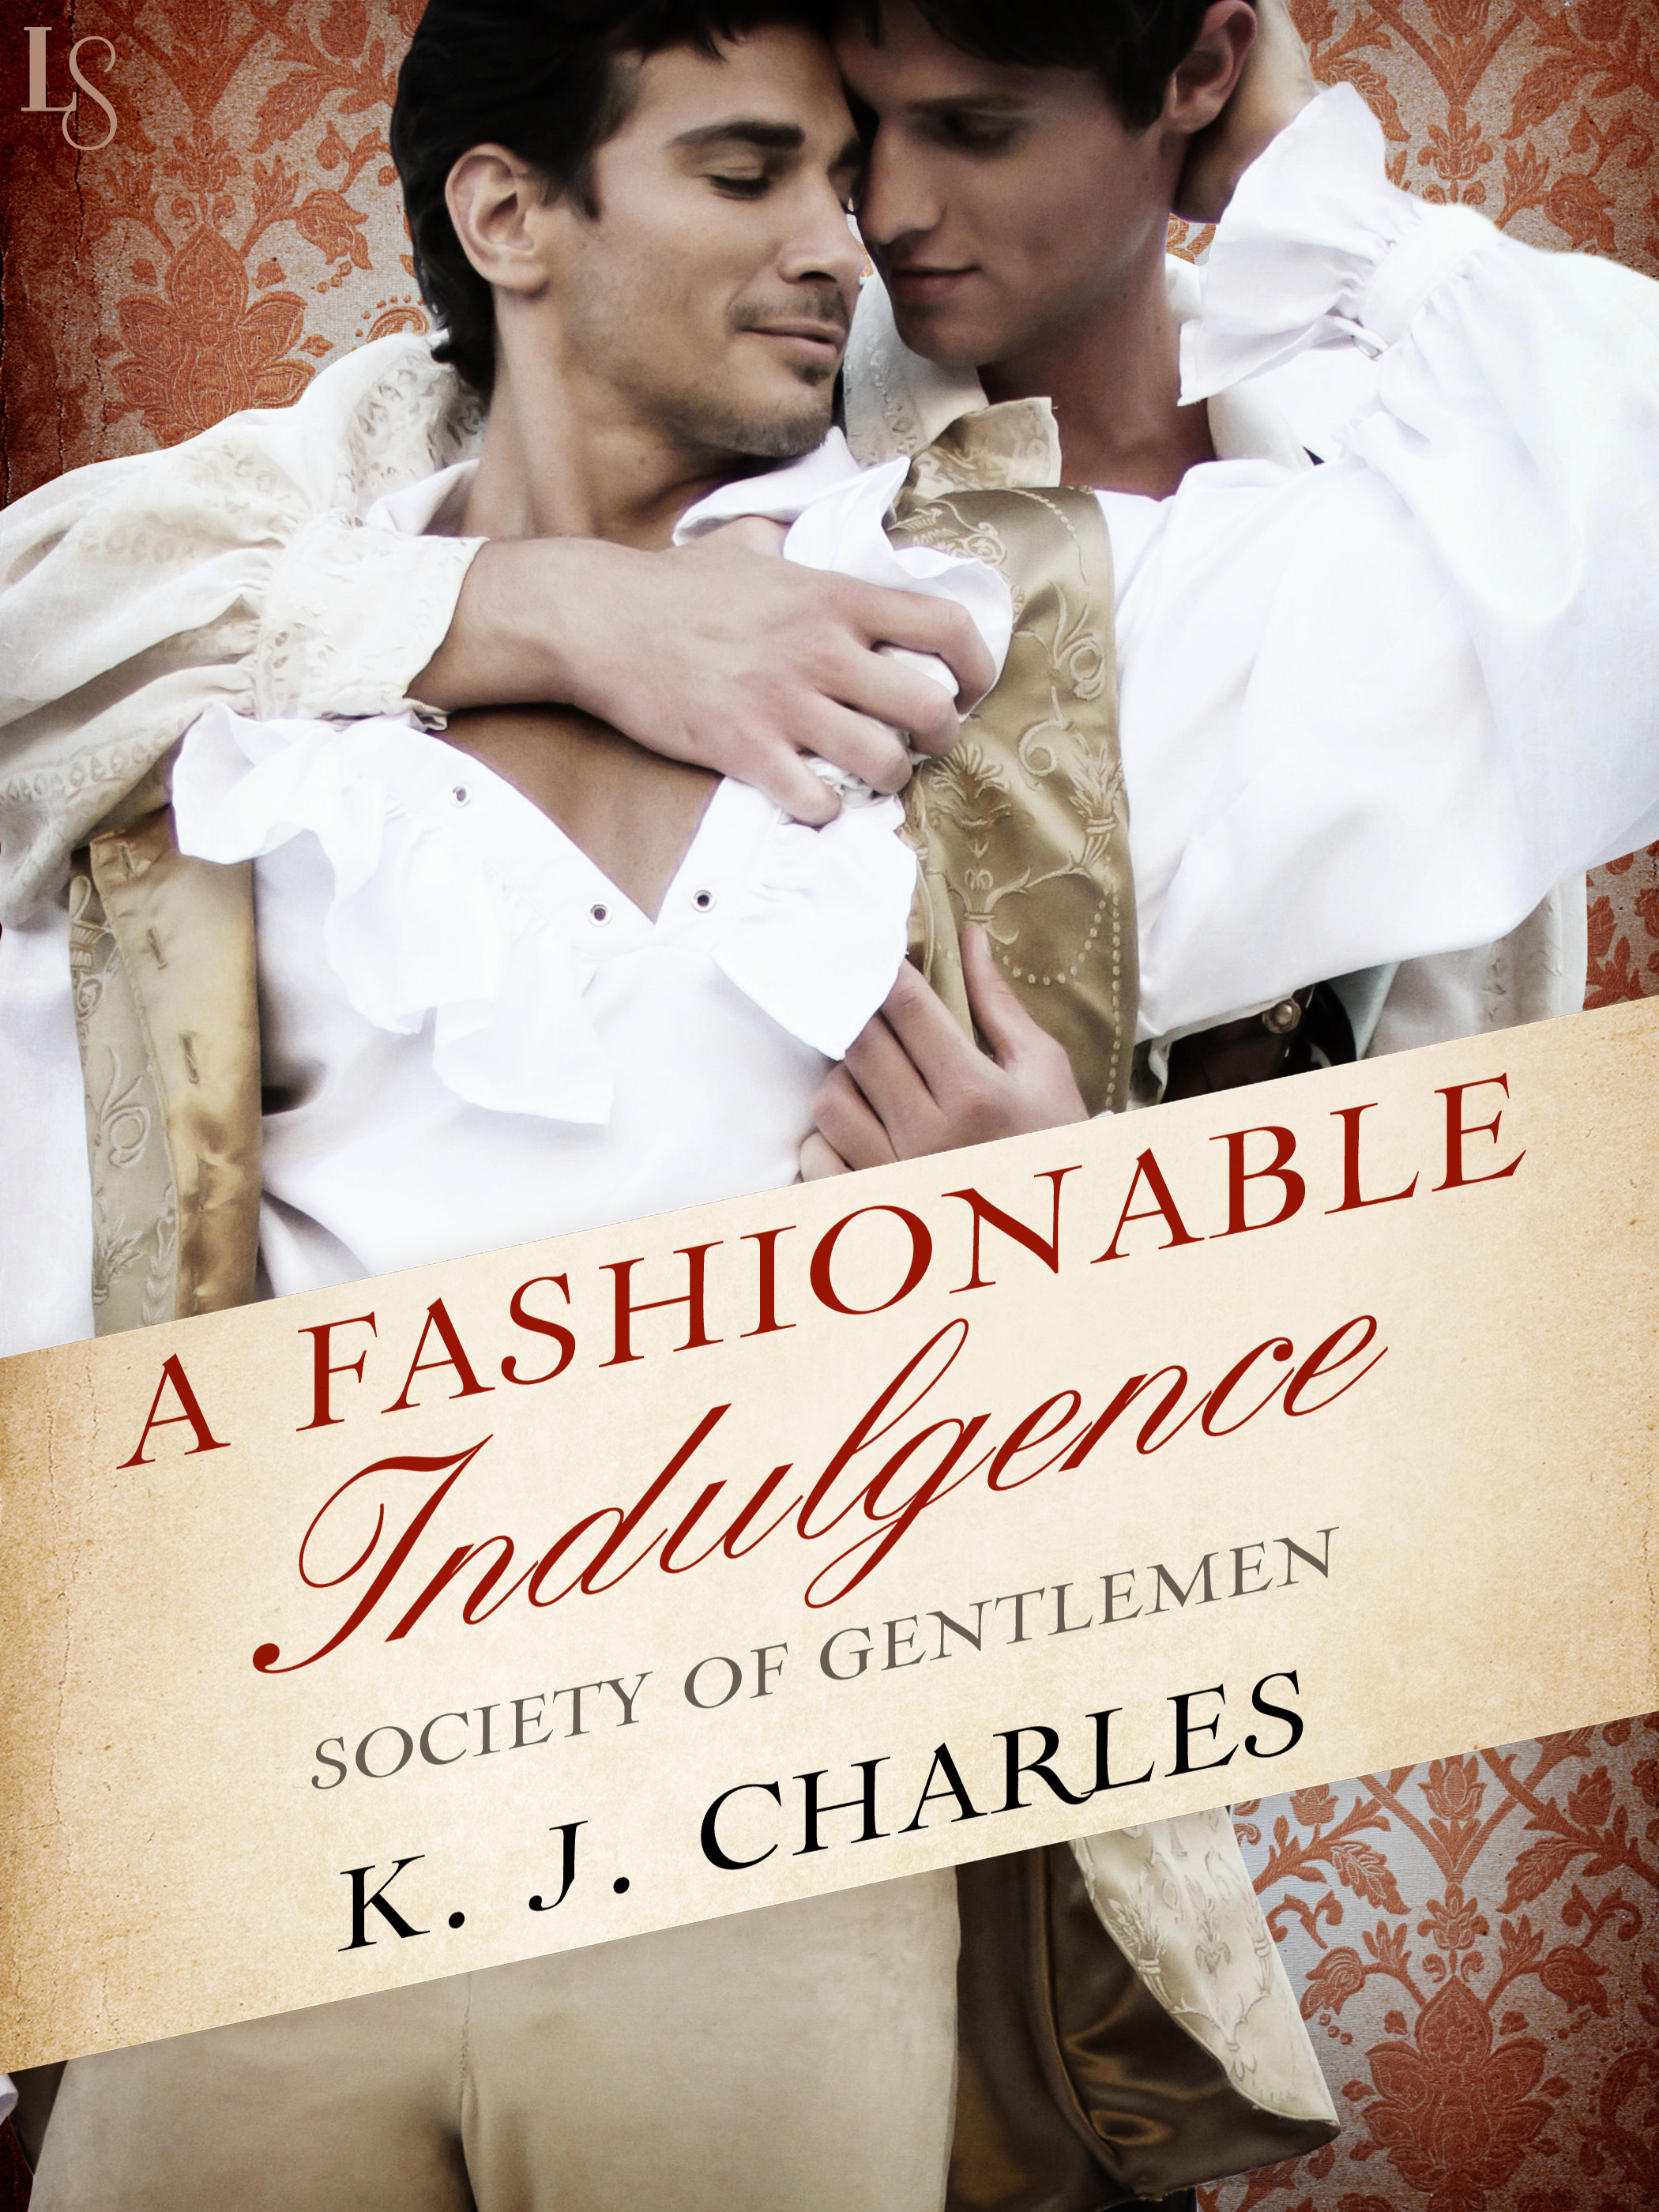 Guest Post and Giveaway: Viscount's Wager by Ava March and A Fashionable Indulgence by K.J. Charles